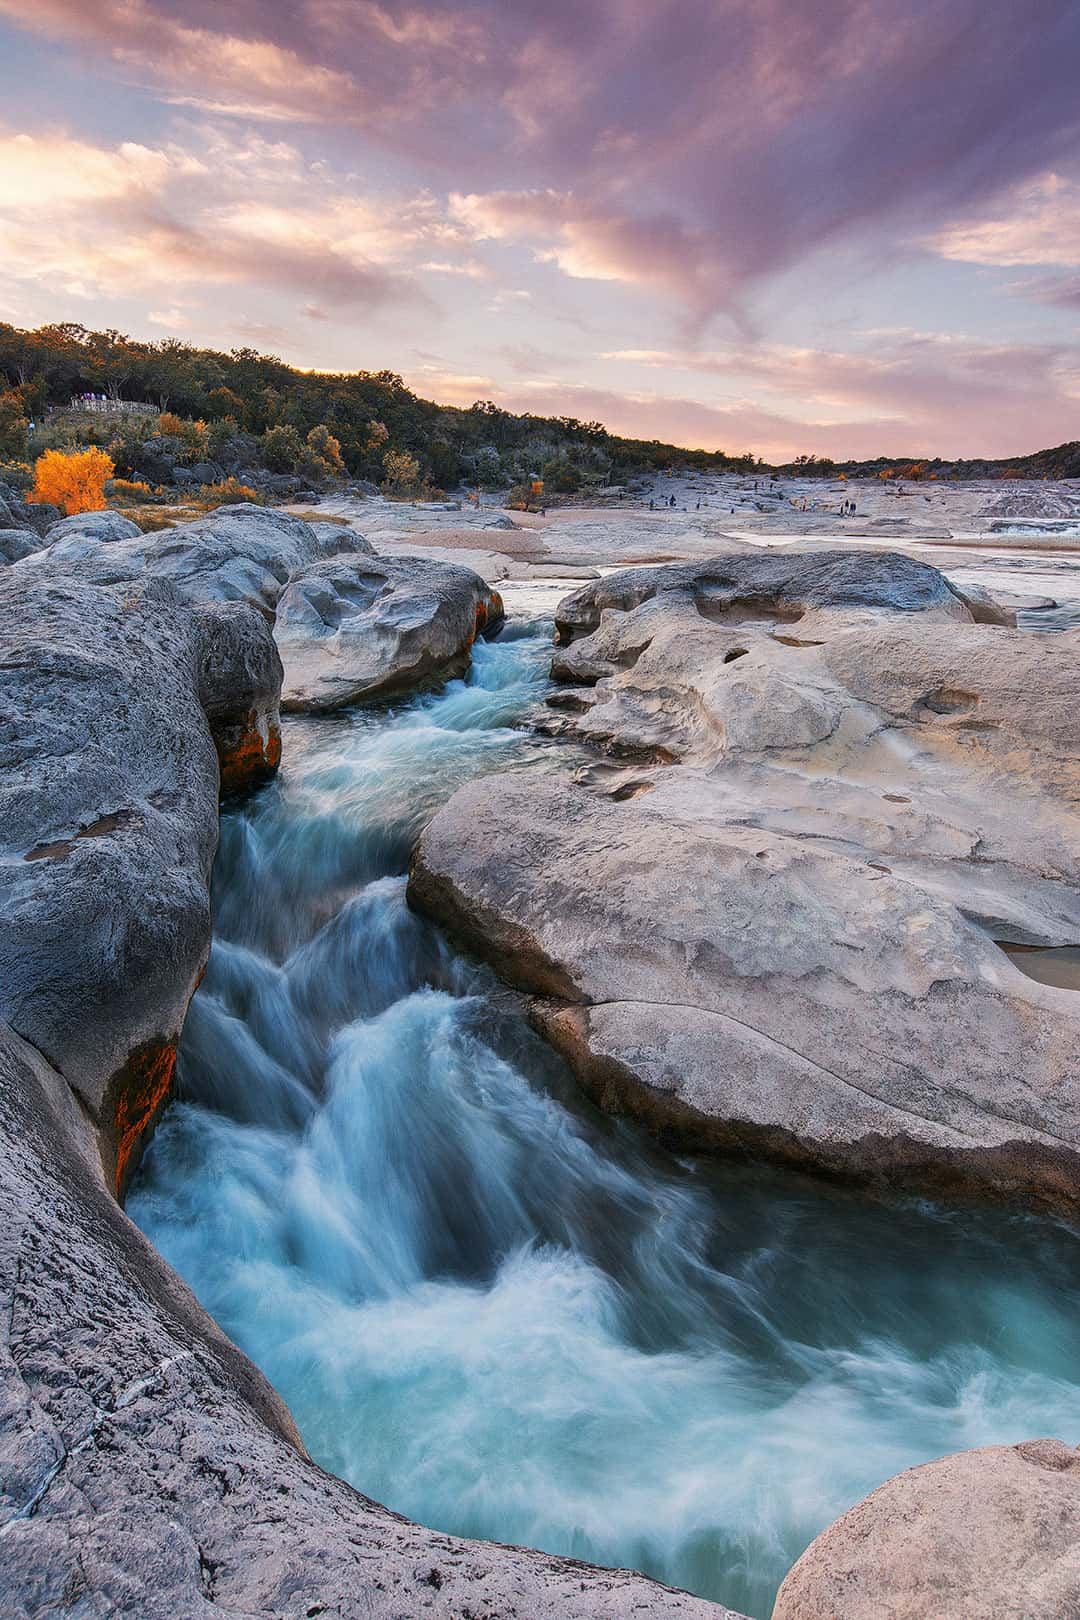 Pedernales Falls State Park + 15+ Best Day Trips from Austin Texas